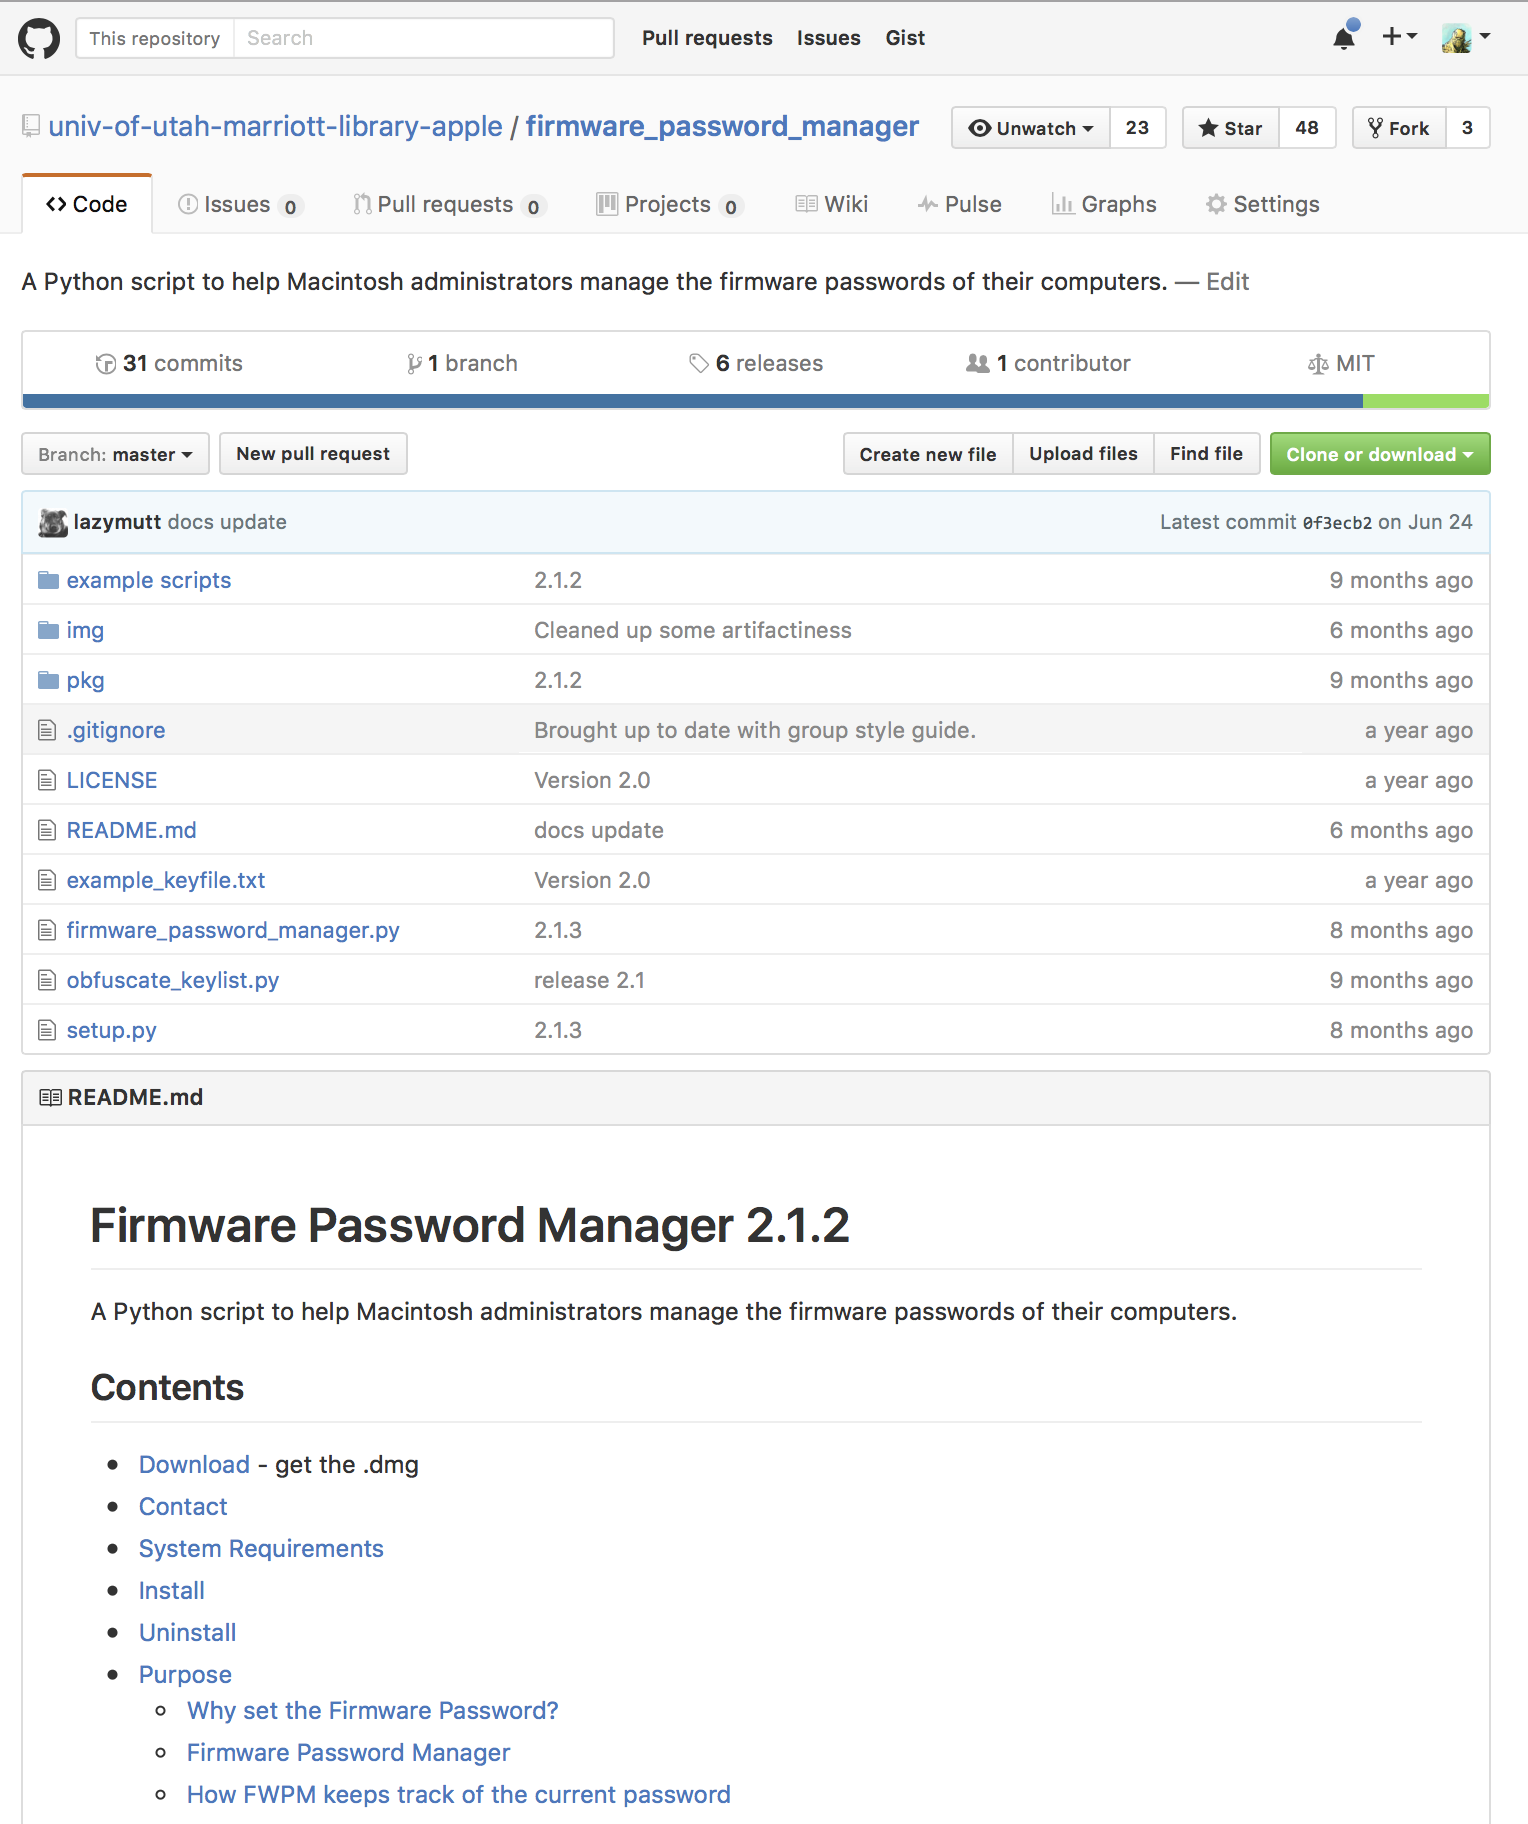 firmware-password-manager-web-site-example